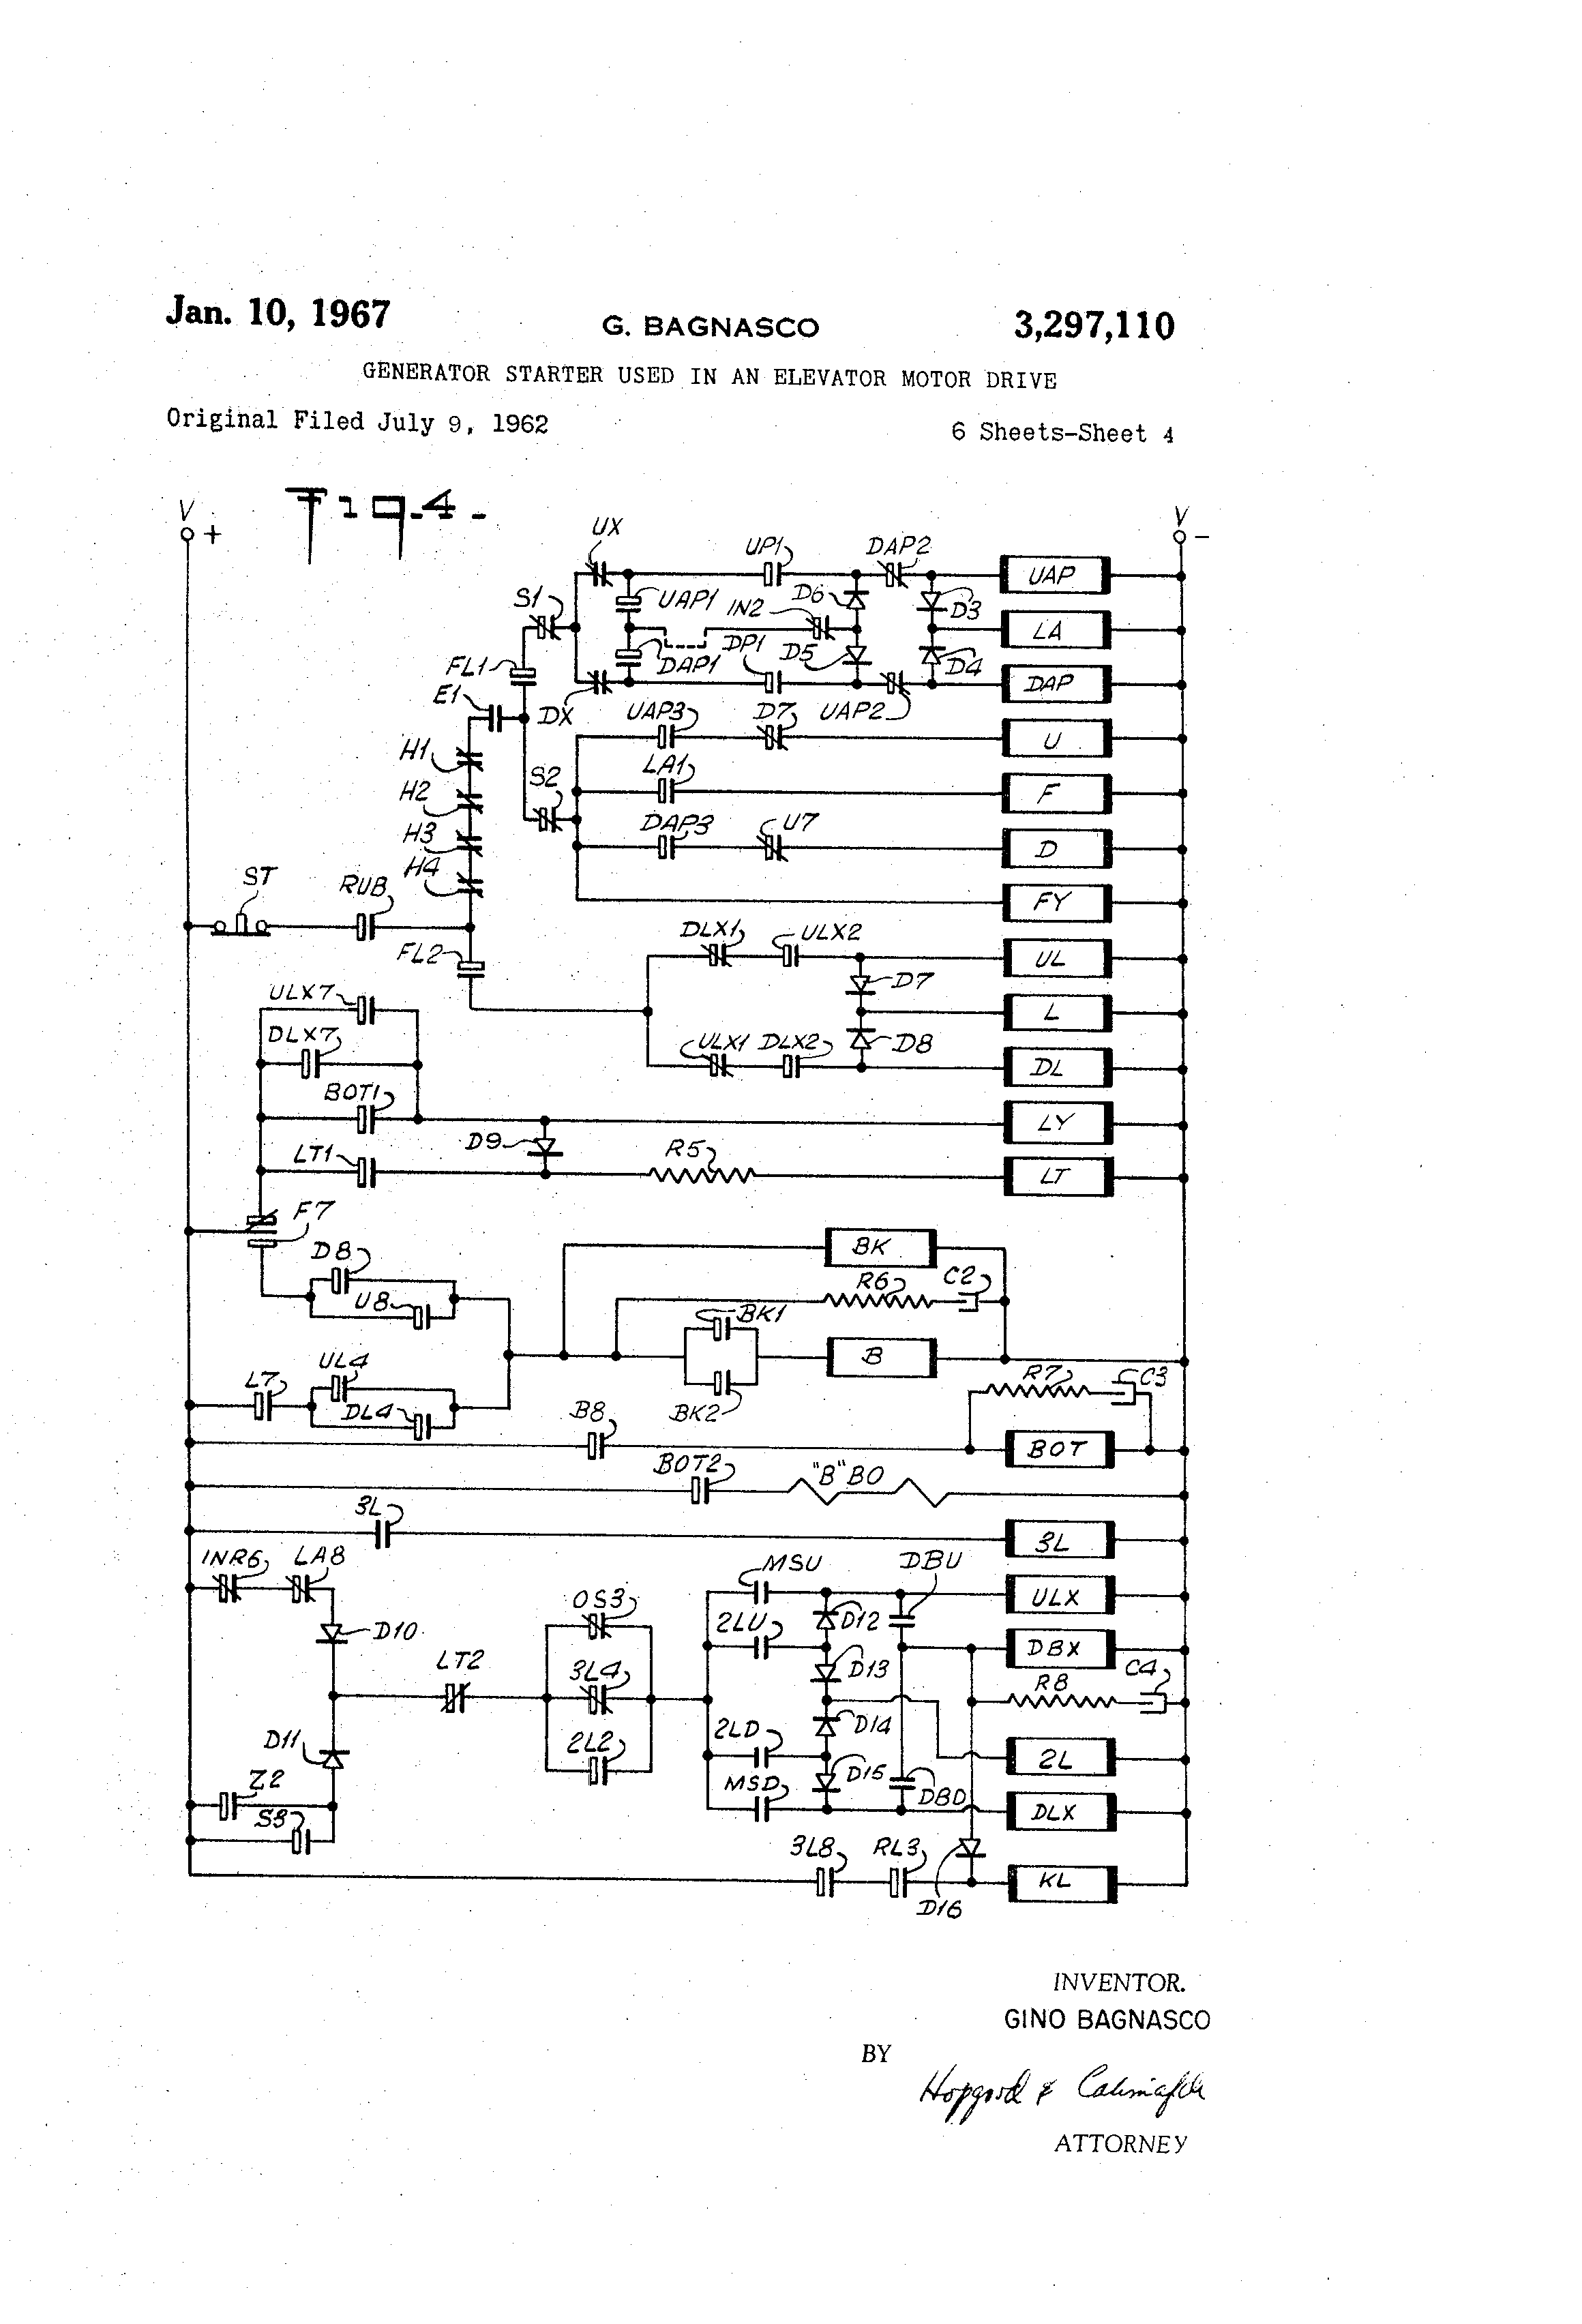 wiring-diagram-for-emerson-t55cxbmh-982-4  Engine Diagram on bmw e46, chevy 4 3 vortec, toyota camry, chevy v8, wankel rotary,